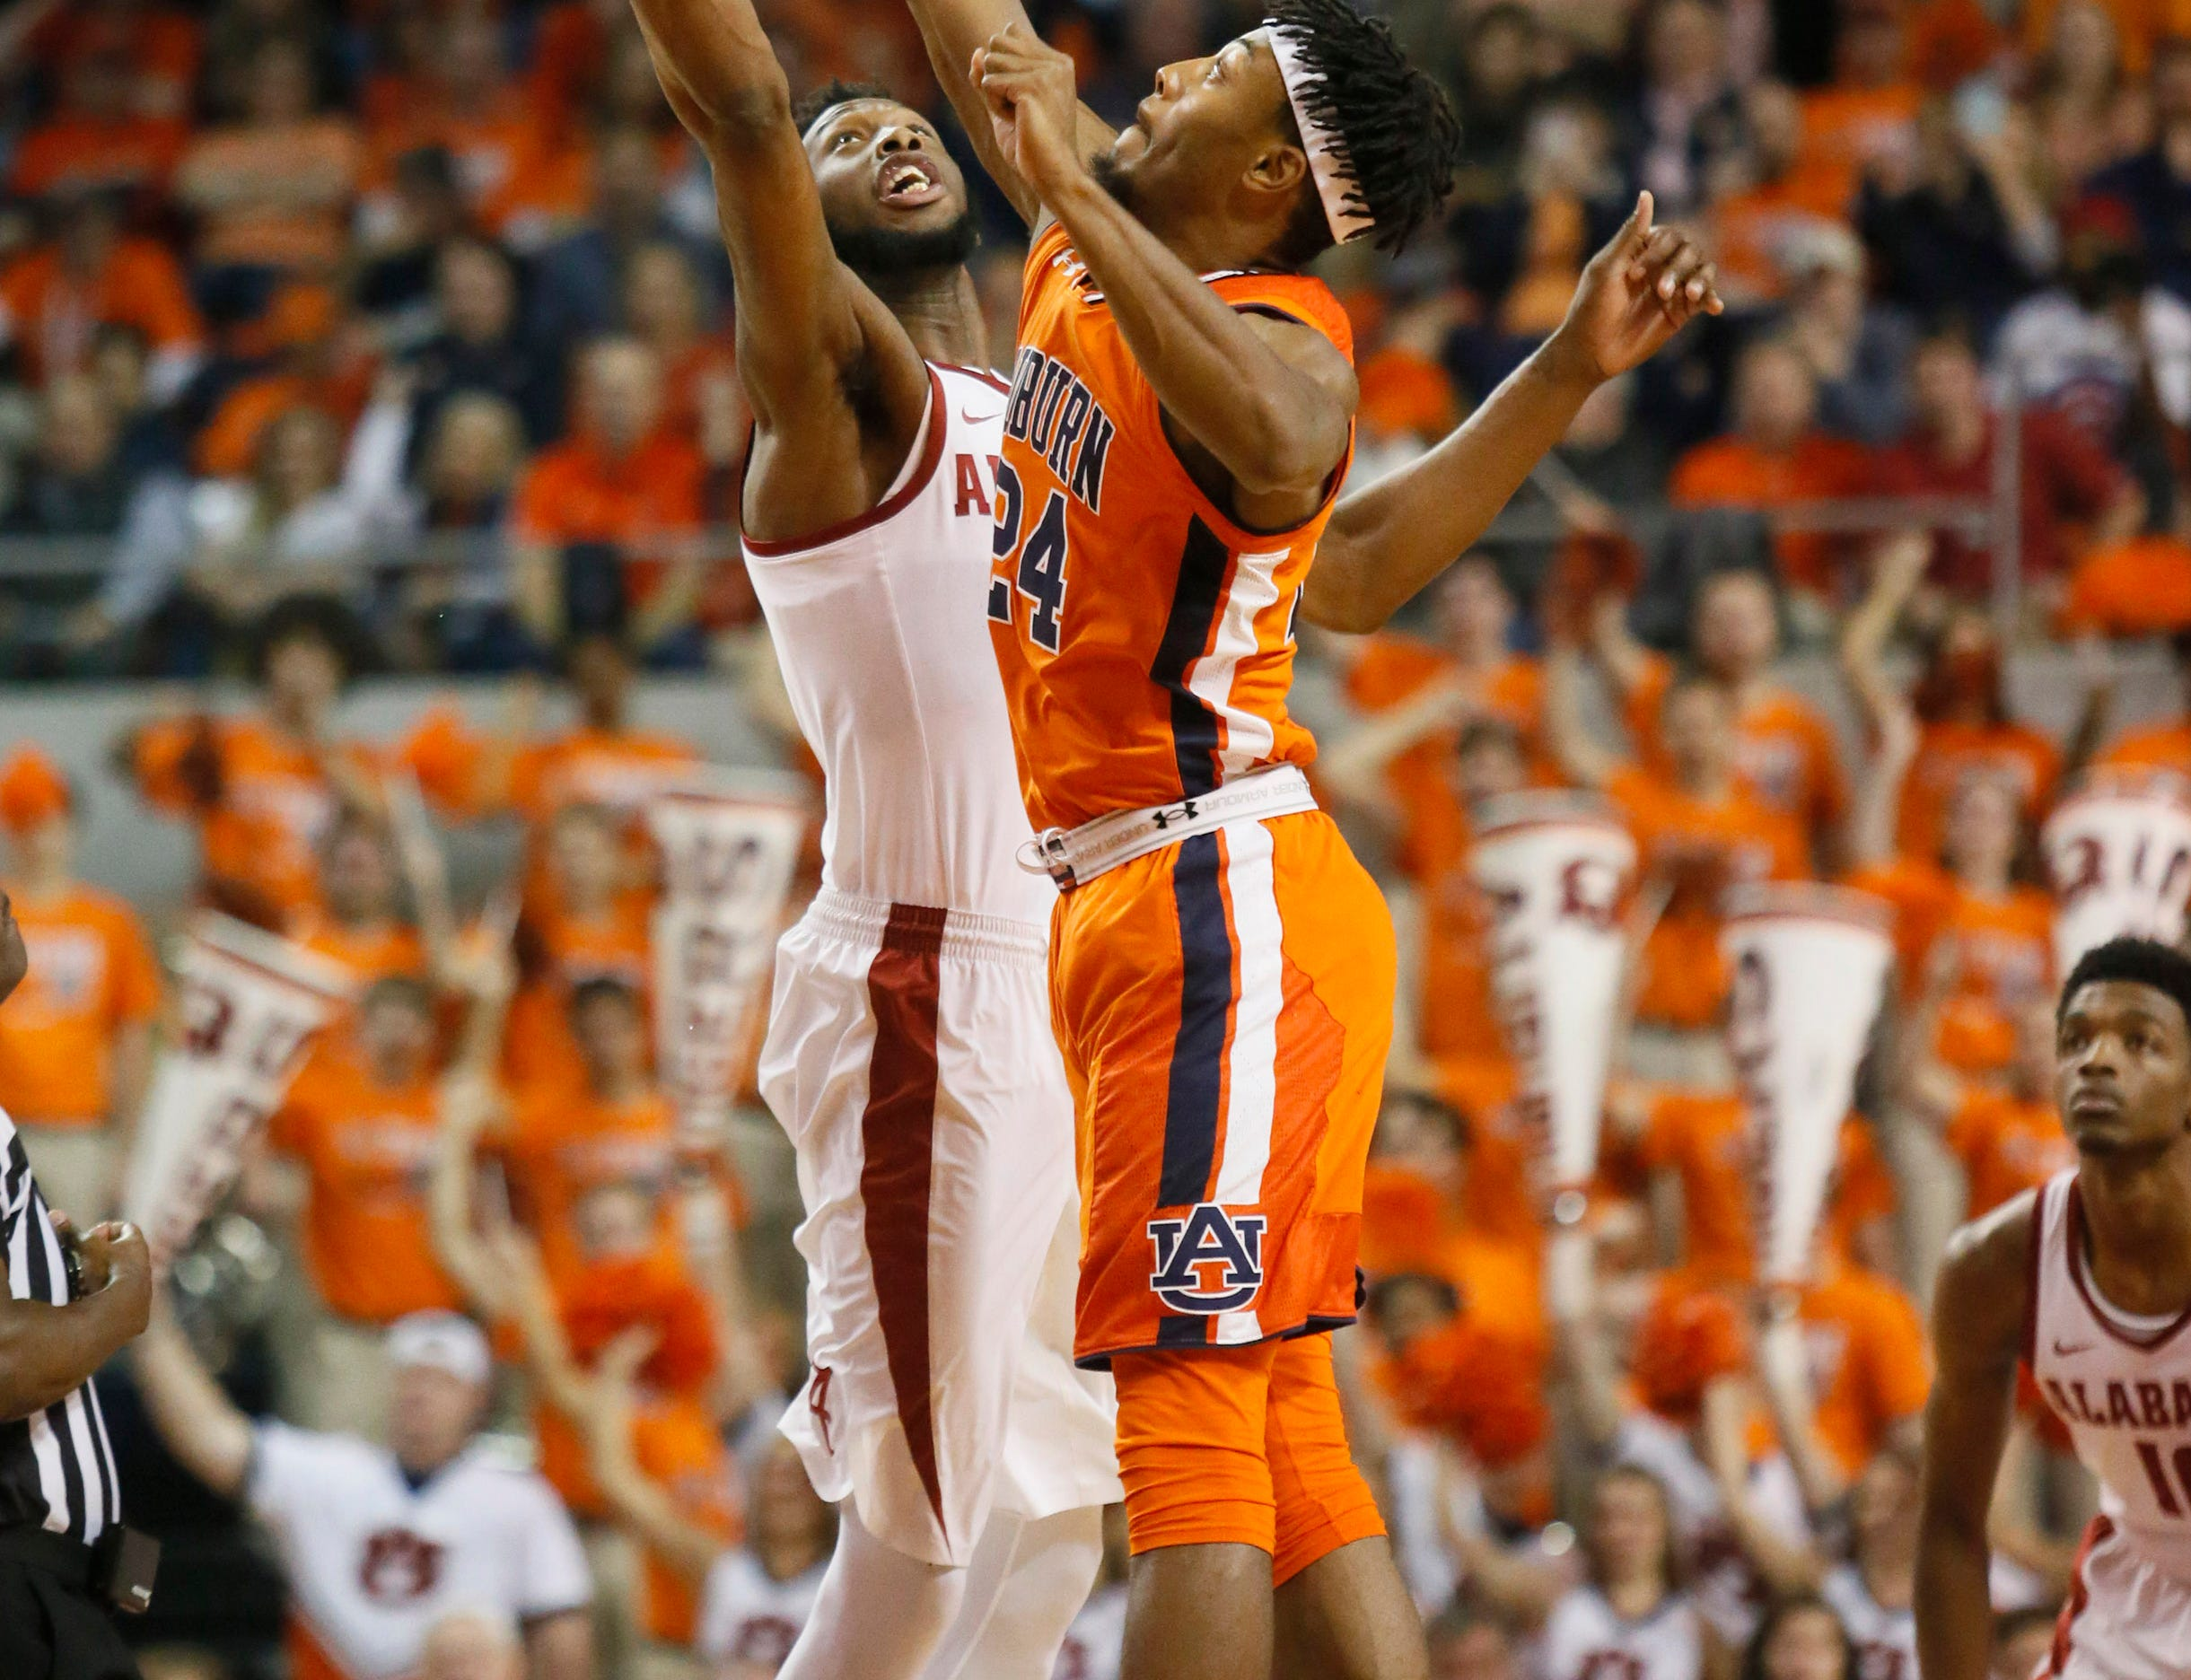 Feb 2, 2019; Auburn, AL, USA; Auburn Tigers forward Anfernee McLemore (24) and Alabama Crimson Tide forward Donta Hall (0) battle for the opening tip at Auburn Arena. Mandatory Credit: John Reed-USA TODAY Sports